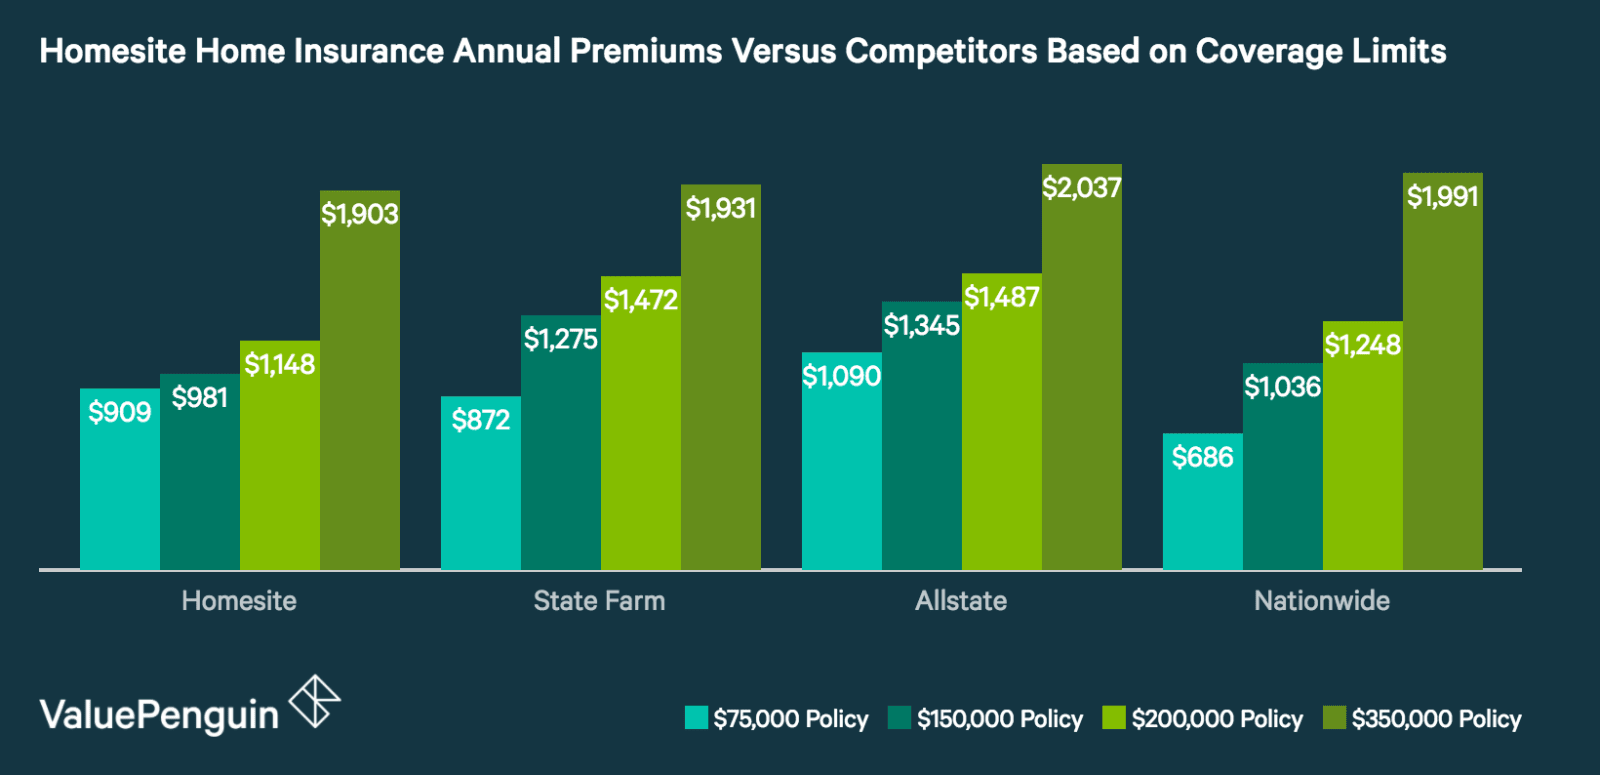 How Do Homesite's Home Insurance Quotes Compare to Other Insurance Companies?